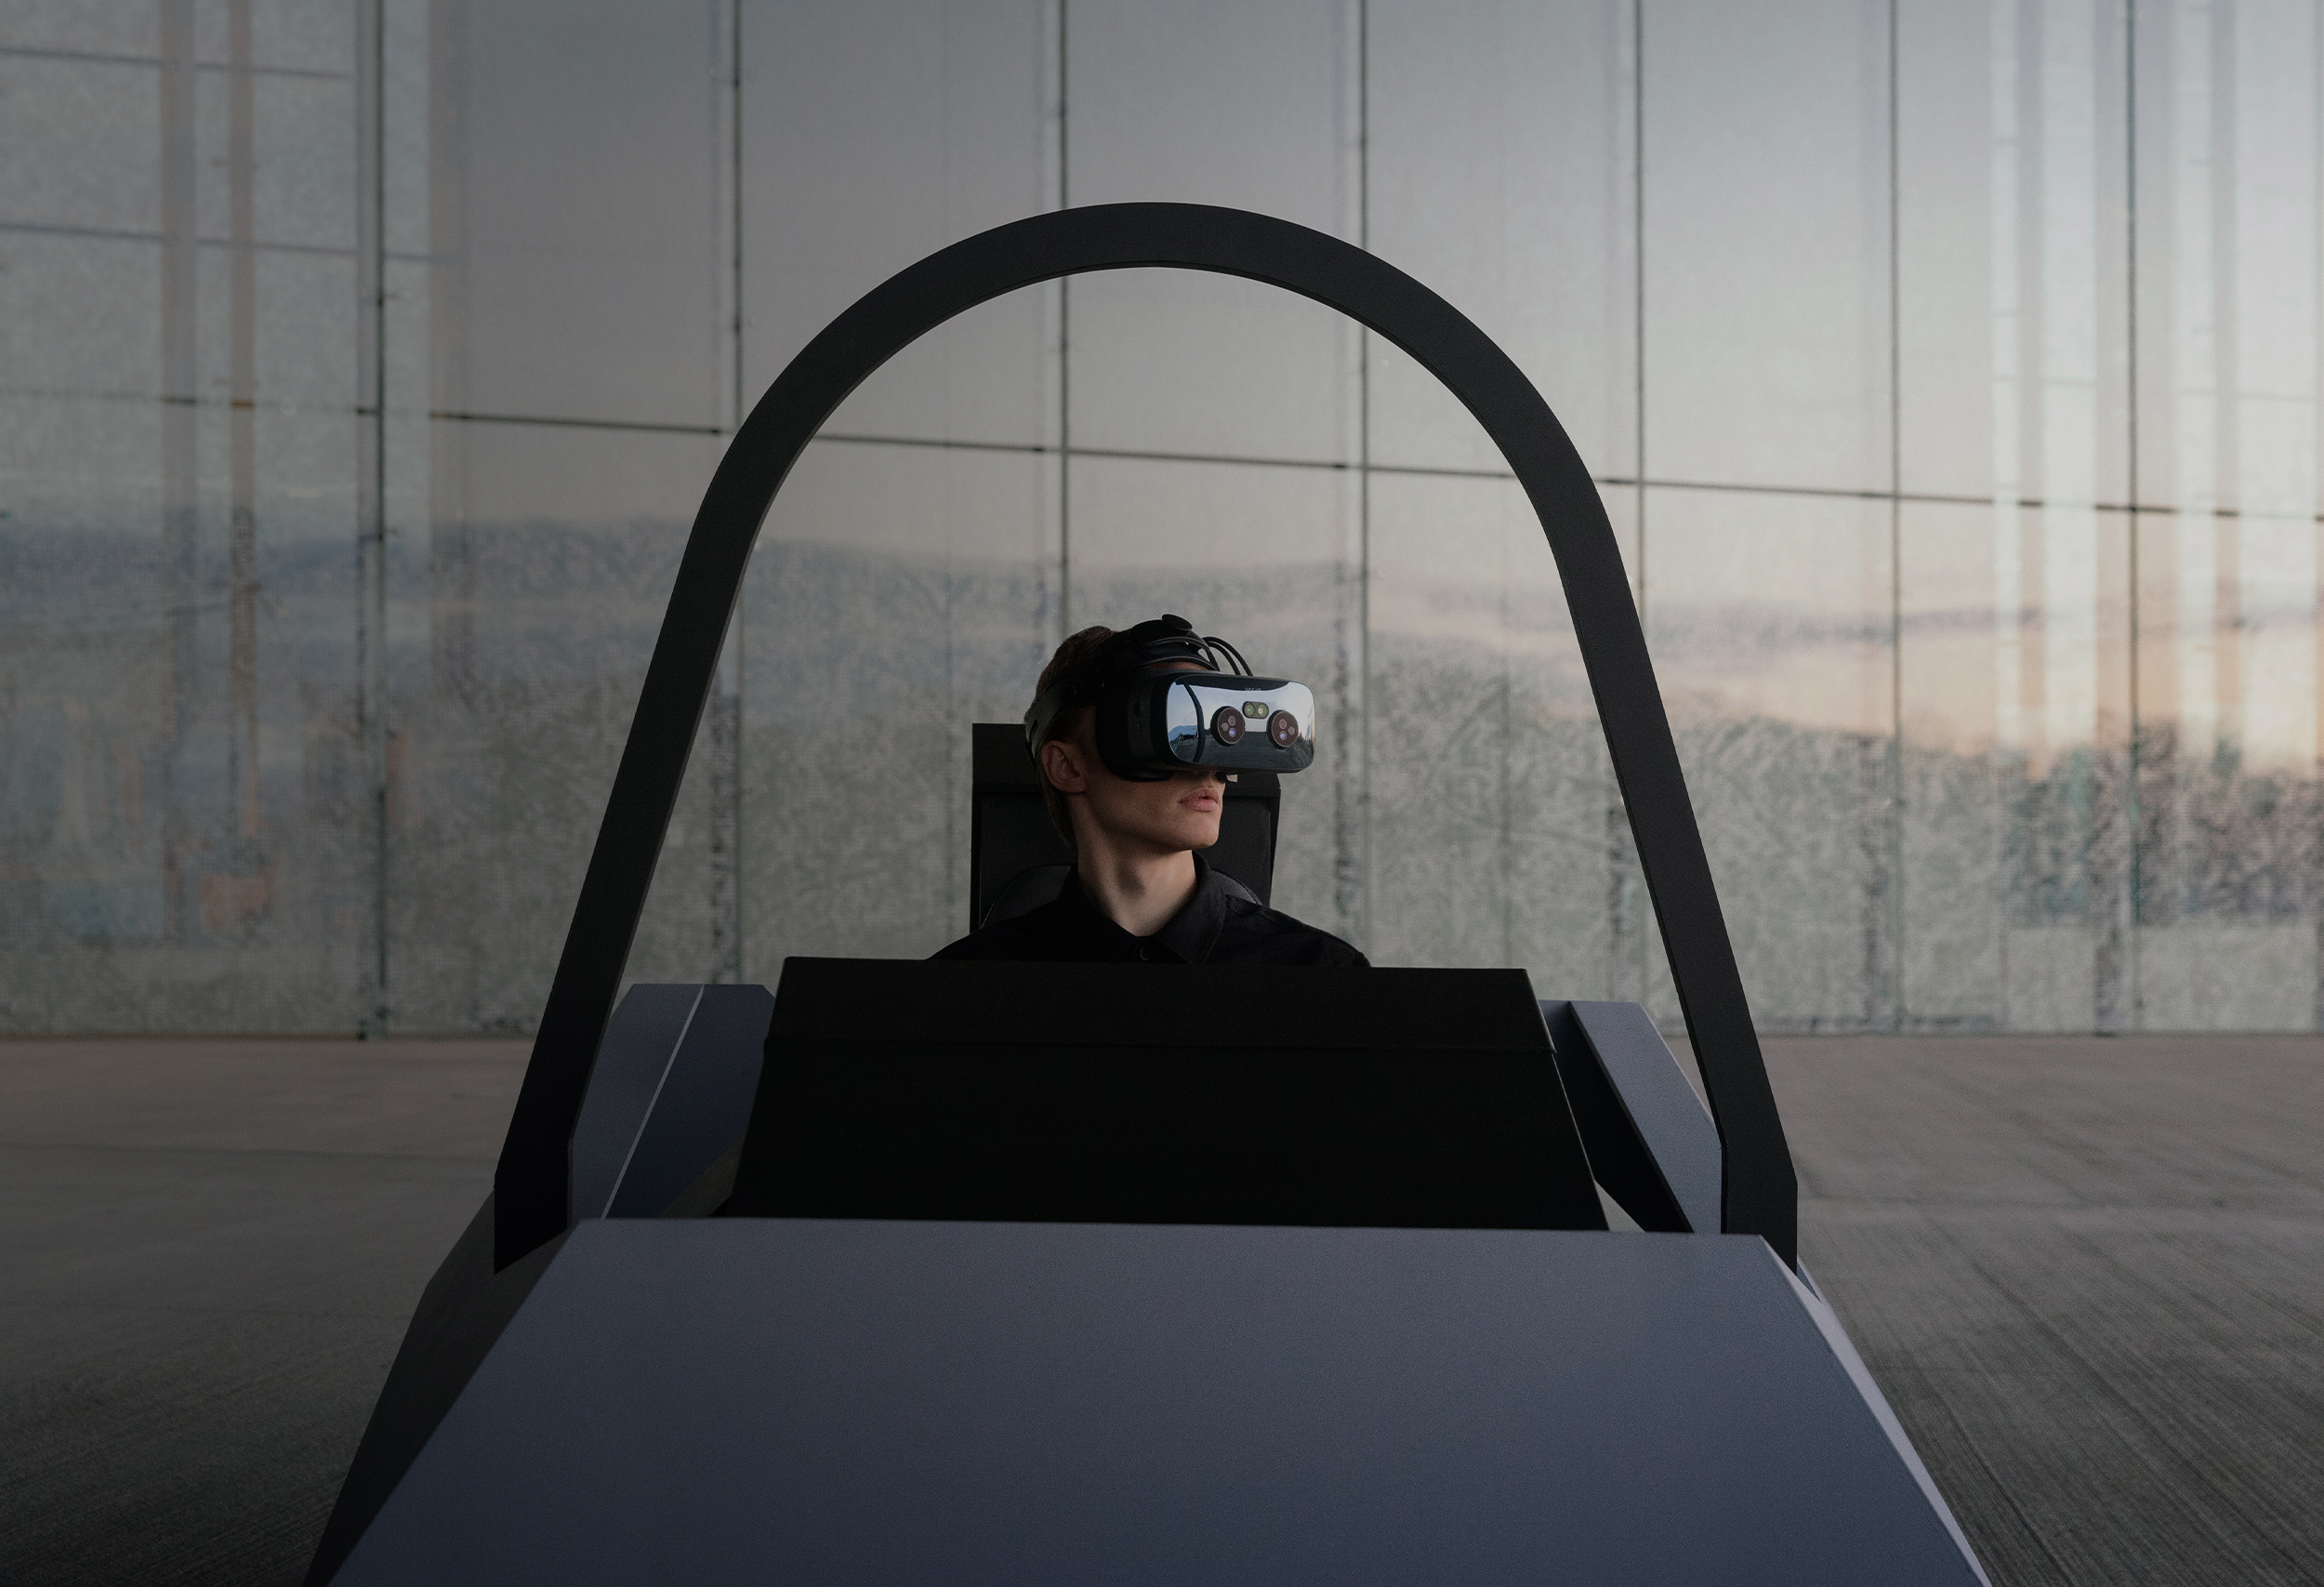 Maritime Safety Education with VR Technology (MarSEVR)